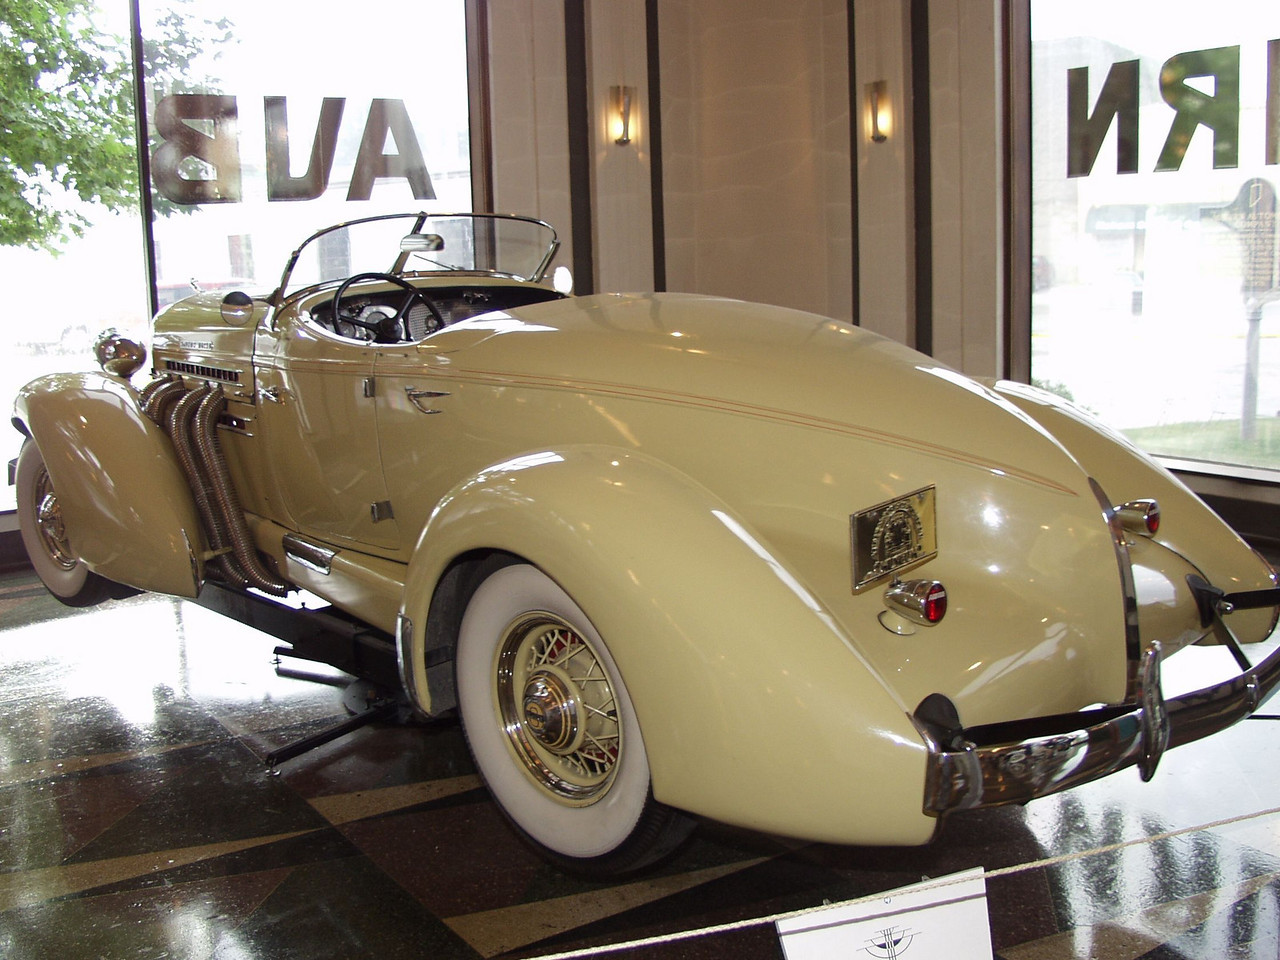 The 1935 Auburn 851 Speedster is powered by an in-line Lycoming eight-cylinder engine. Fitted with a supercharger, this motor turns out 150 horsepower.  The wheelbase measures 127 inches.  Priced at $2,245, the 851 Speedster was Auburn's most expensive 1935 model.<br /> In 1935 one tenth of one percent of U.S. corporations earned half of all corporate income.  The E.I. Dupont Corporation introduced nylon that year.